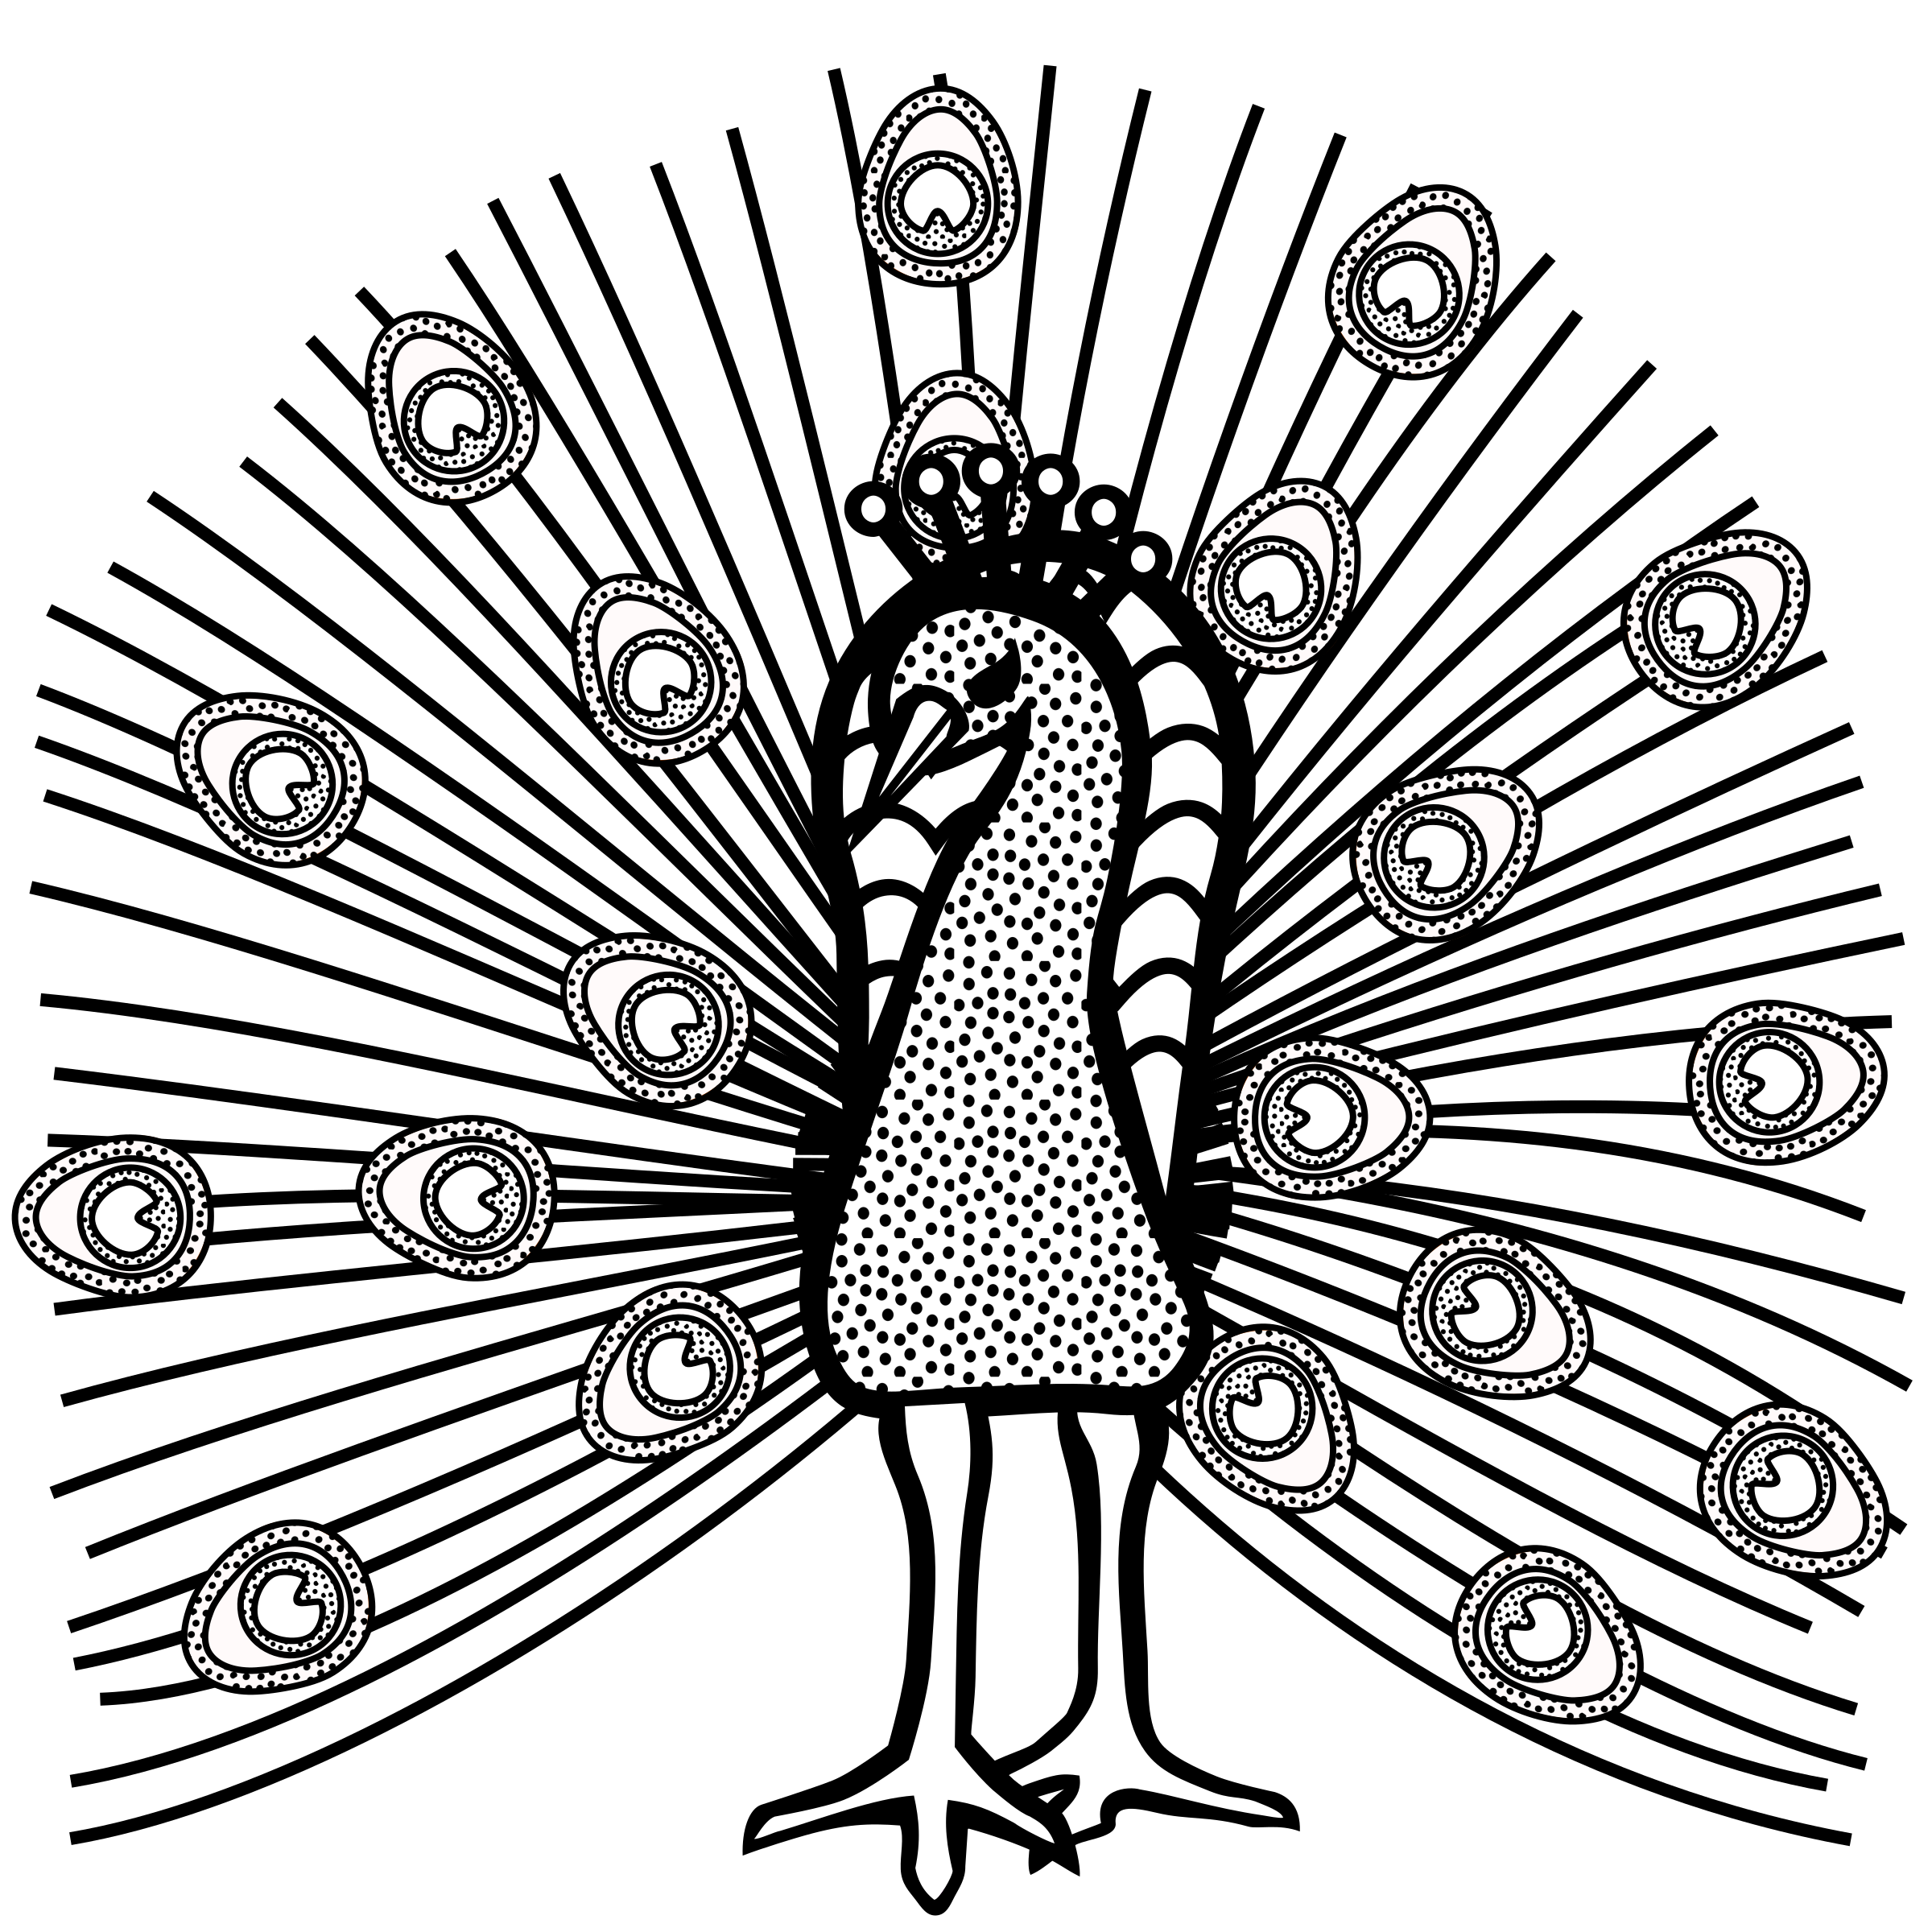 clip transparent stock Peacock clipart black and white. Lineart big image png